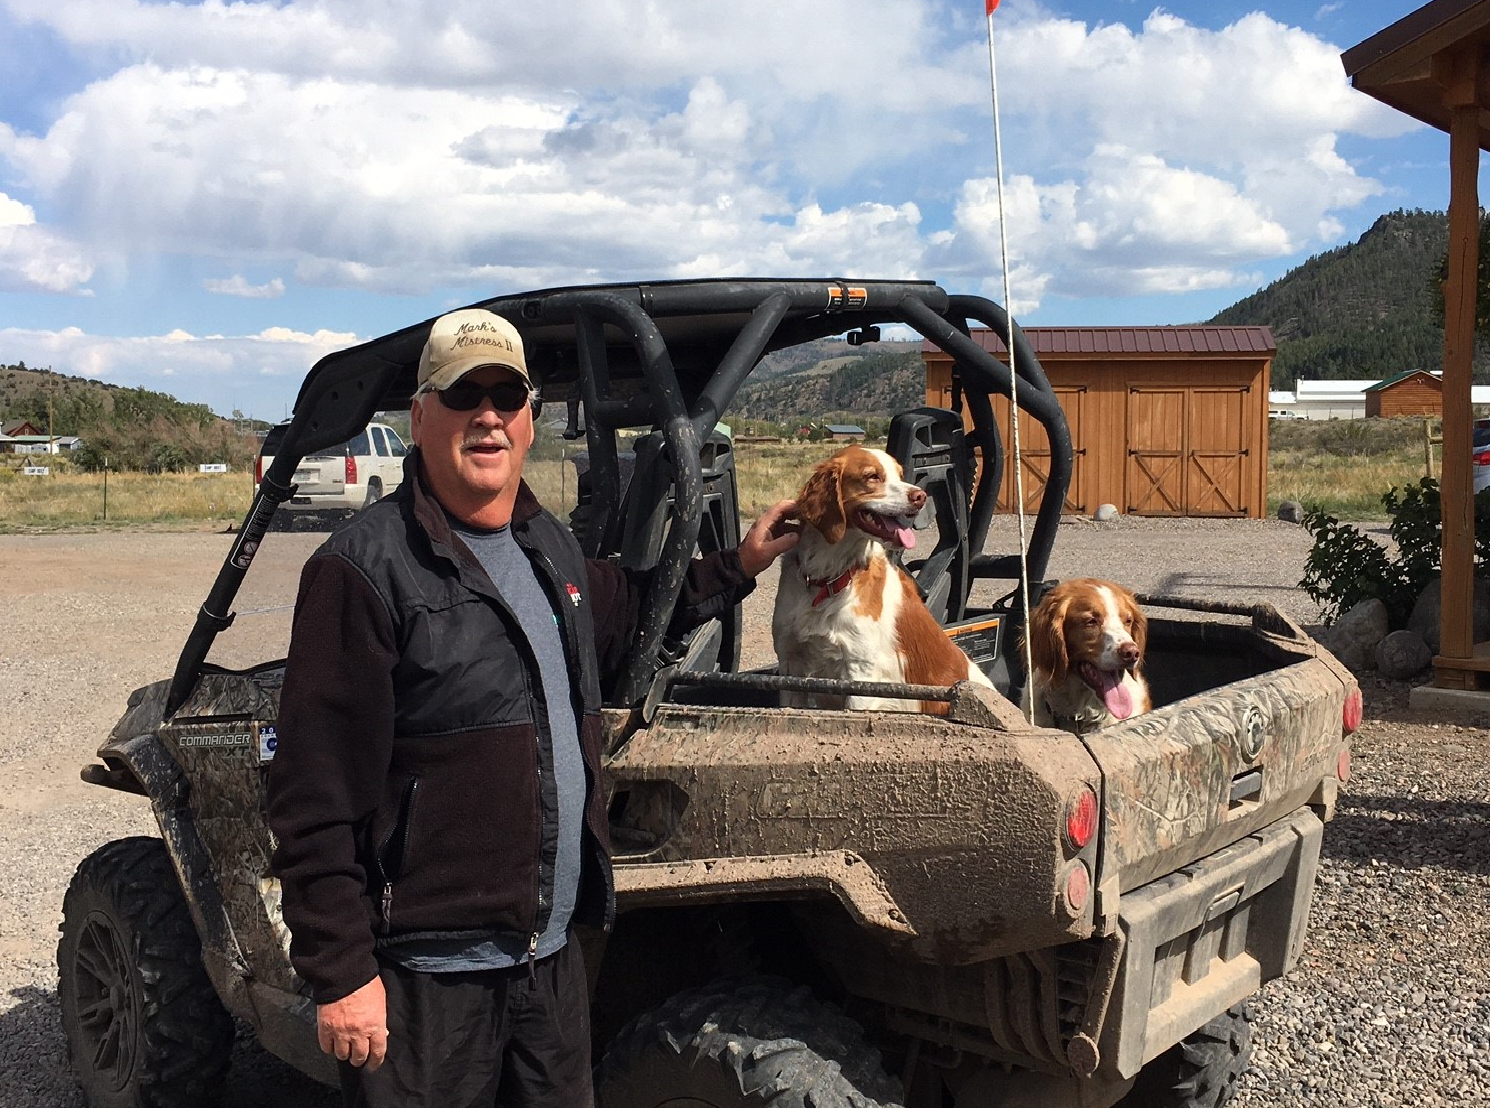 Even our furry friends like to go riding!